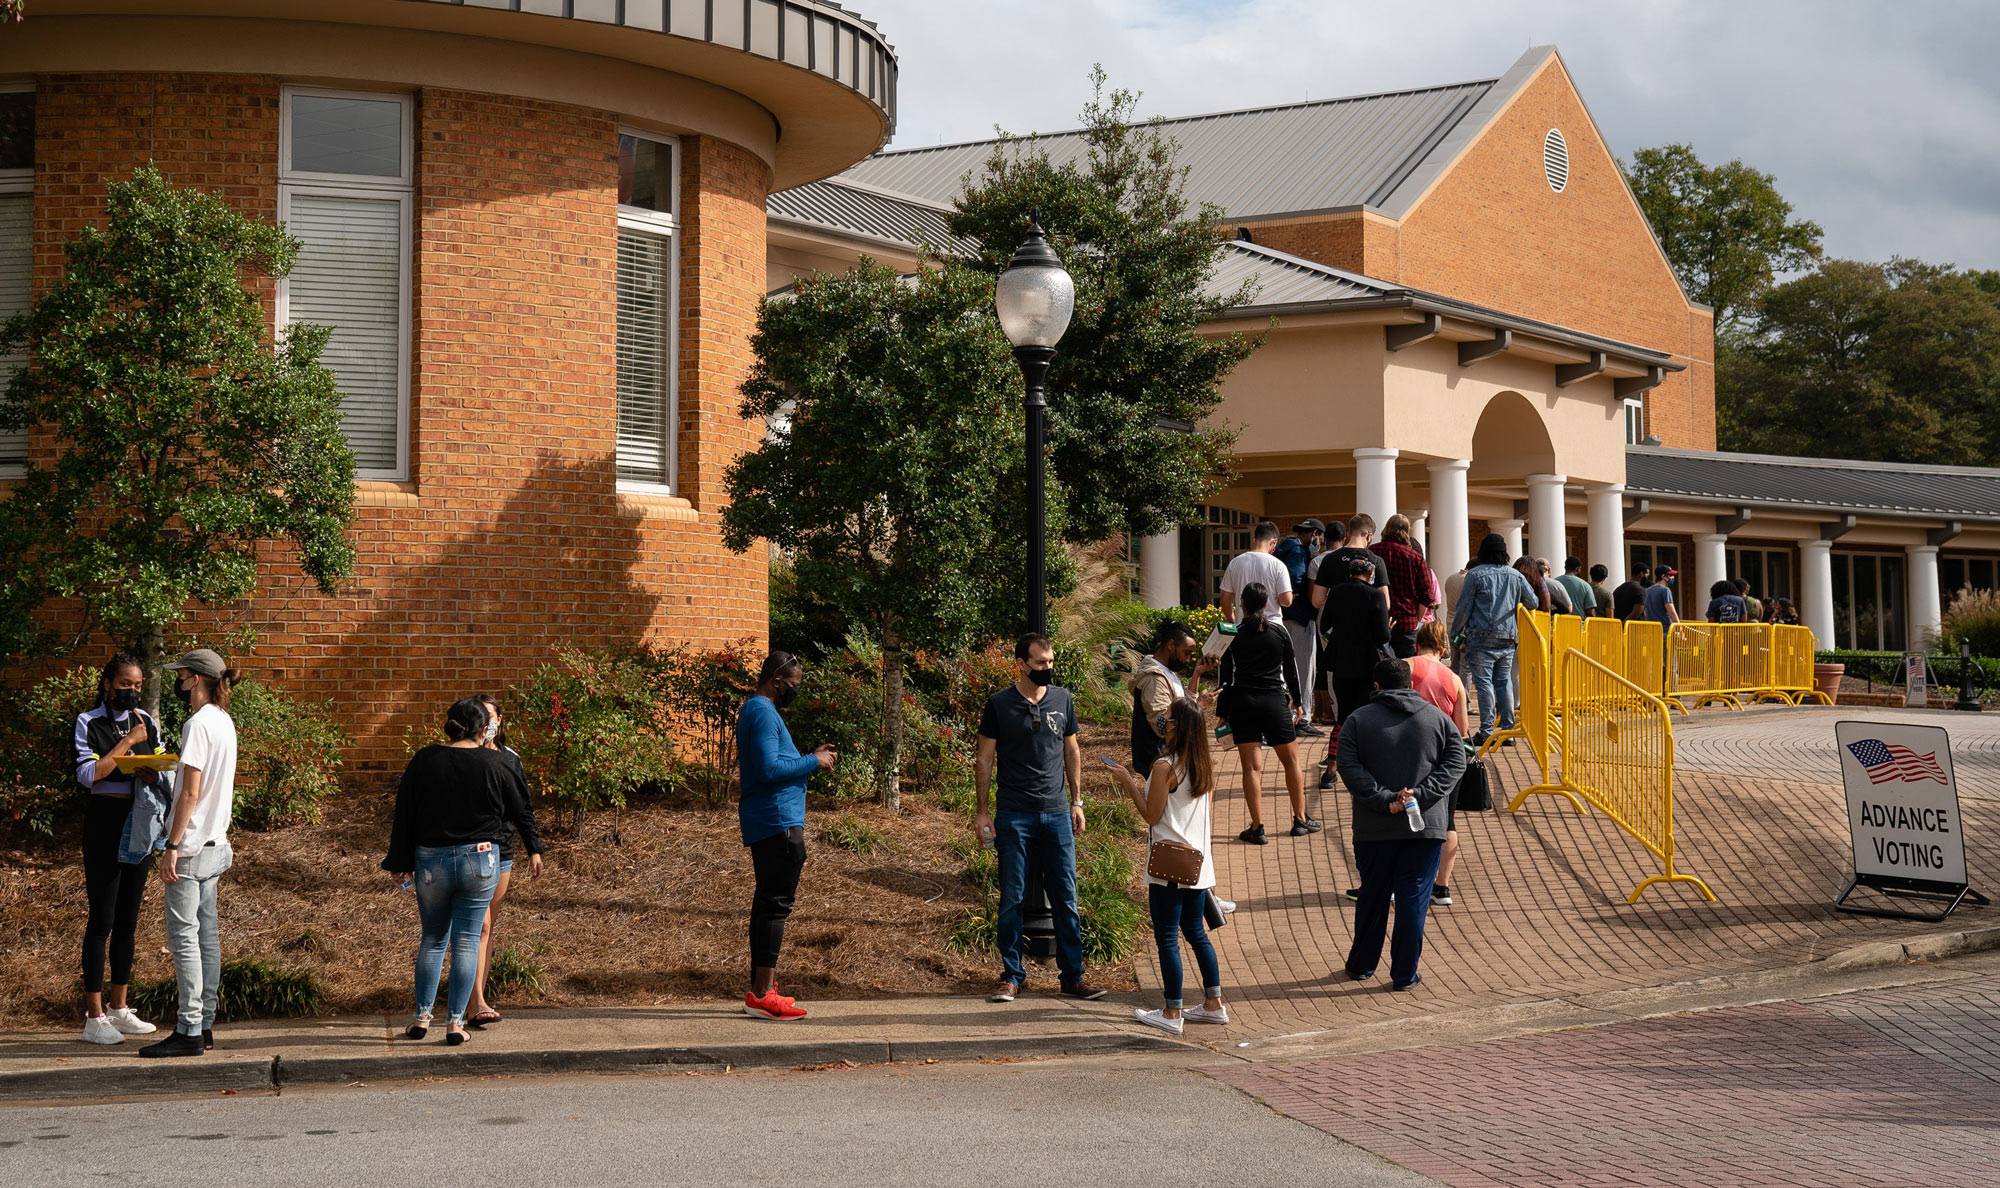 People wait in line to cast their ballots at an early voting location in the Smyrna Community Center on October 24 in Smyrna, Georgia.